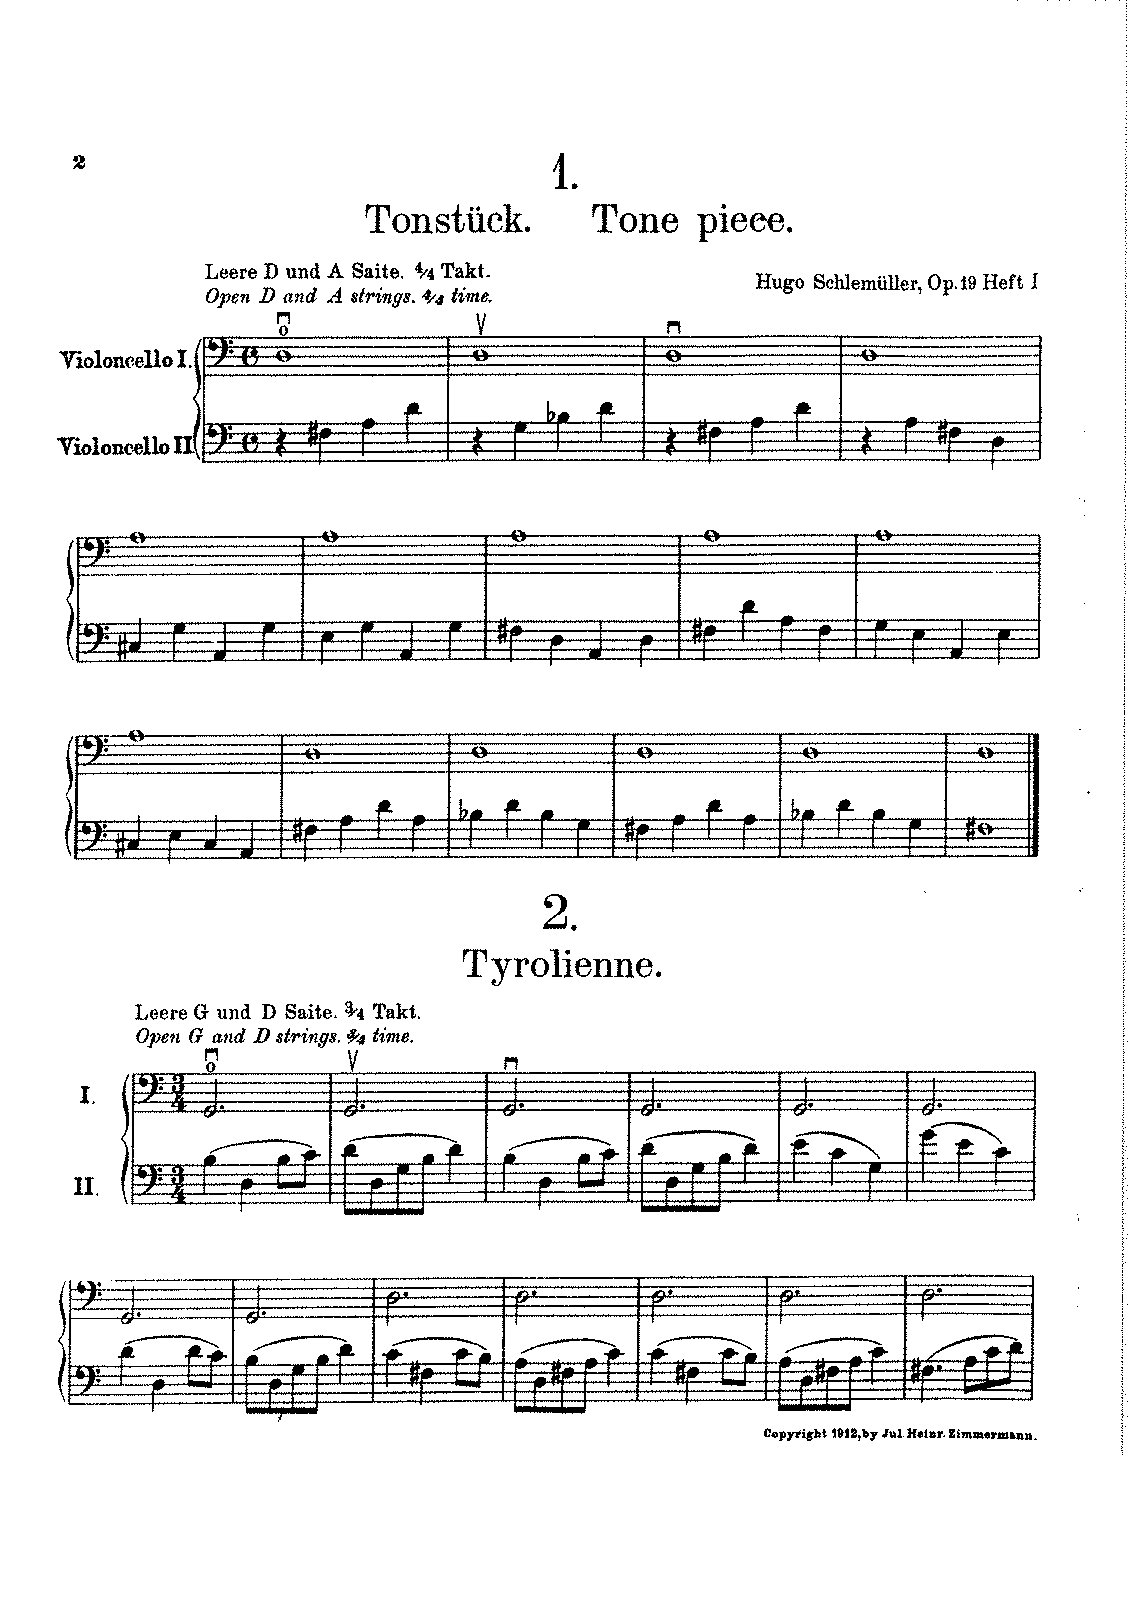 PMLP130105-Schlemueller, Hugo - The Young Cellist. op. 19 book 1 (cello part).pdf